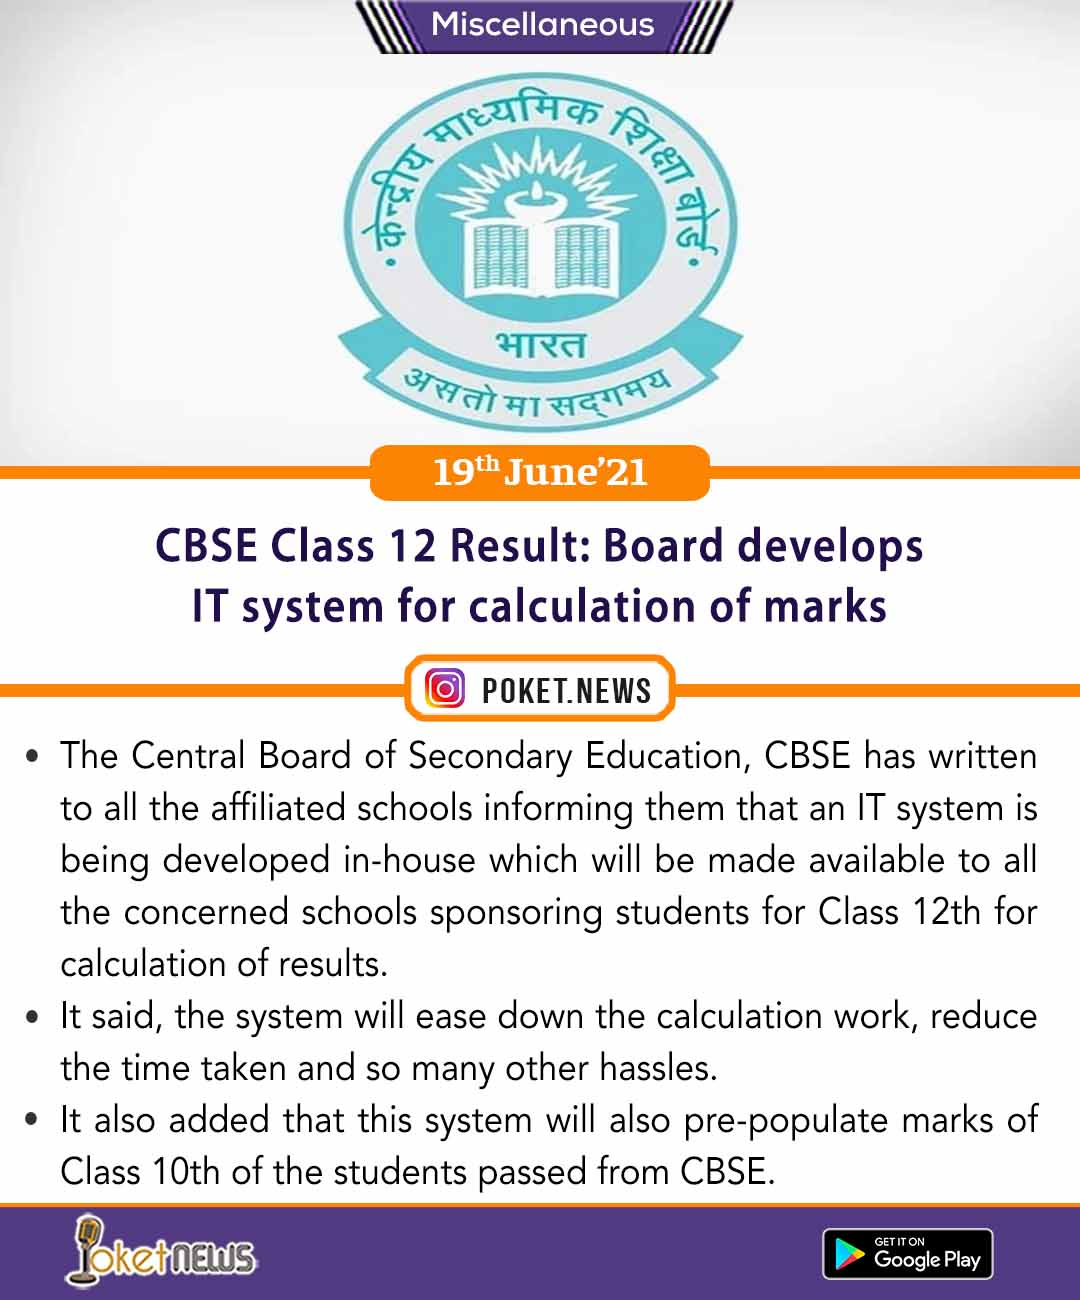 CBSE Class 12 Result: Board develops IT system for calculation of marks